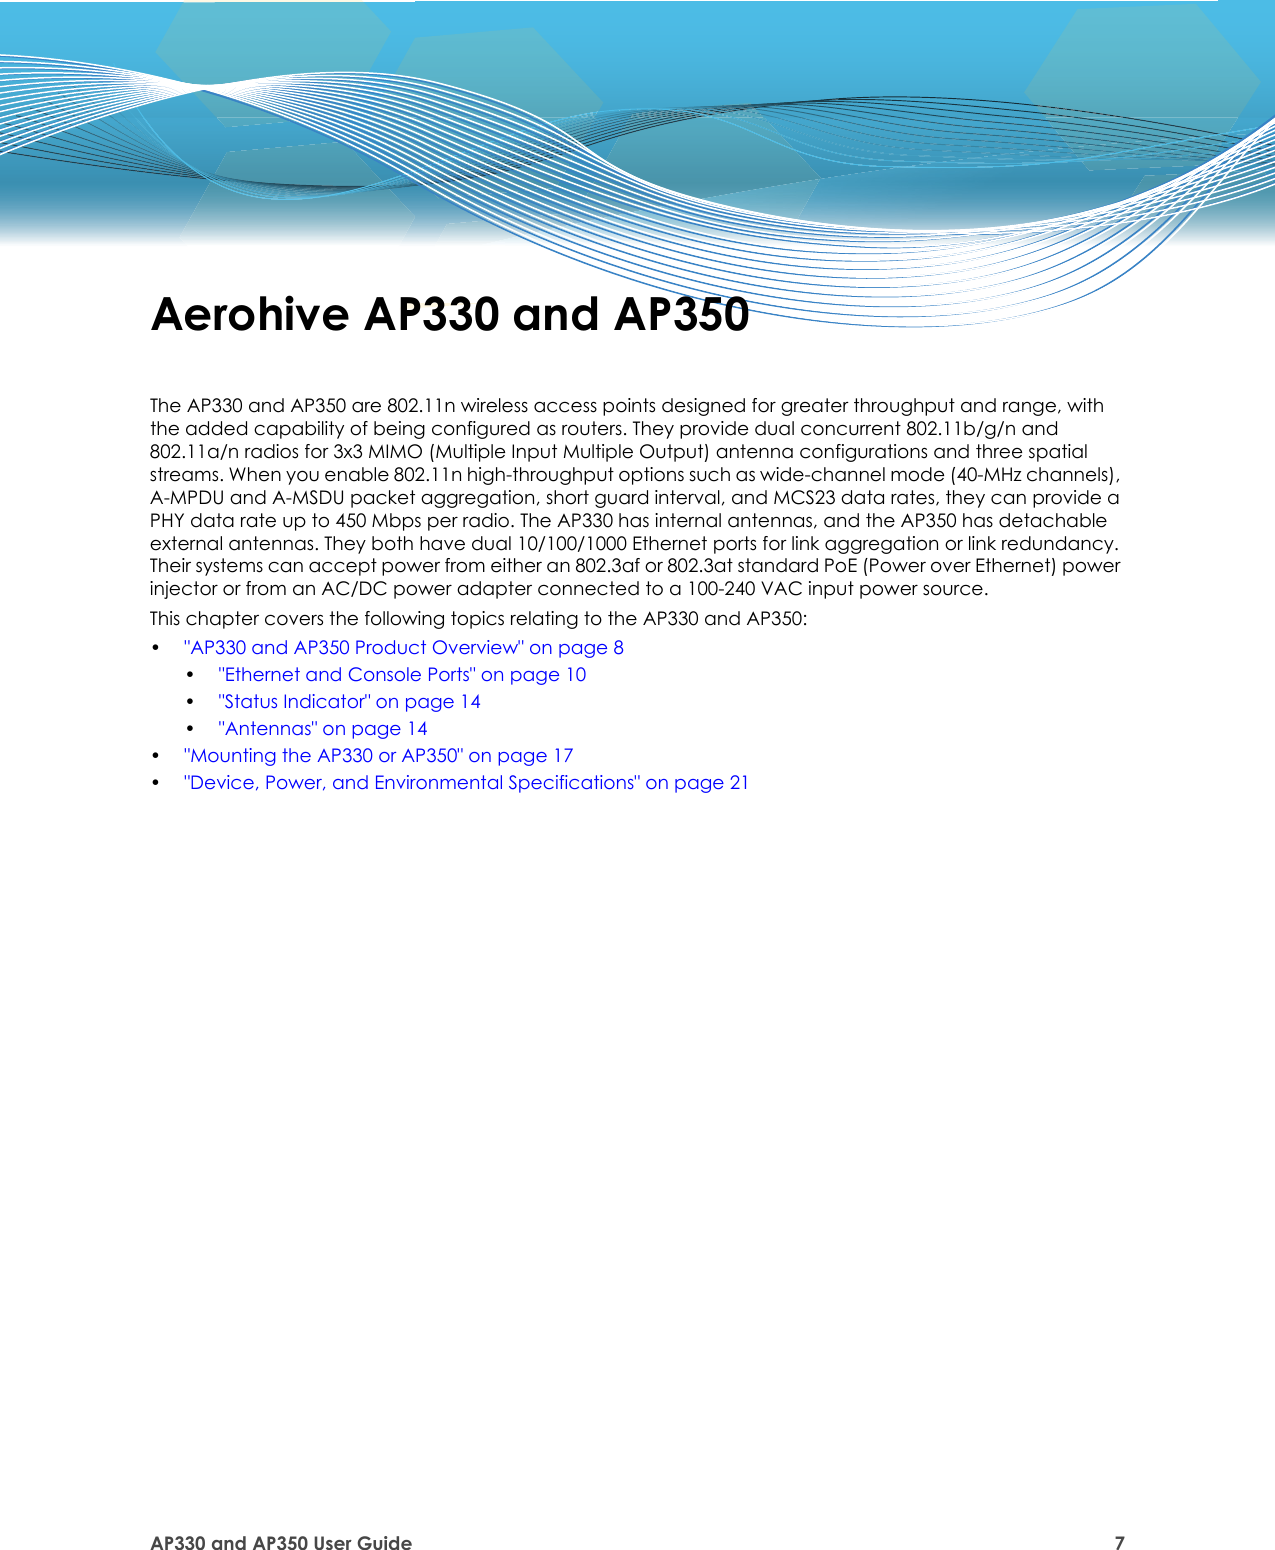 "AP330 and AP350 User Guide 7Aerohive AP330 and AP350The AP330 and AP350 are 802.11n wireless access points designed for greater throughput and range, with the added capability of being configured as routers. They provide dual concurrent 802.11b/g/n and 802.11a/n radios for 3x3 MIMO (Multiple Input Multiple Output) antenna configurations and three spatial streams. When you enable 802.11n high-throughput options such as wide-channel mode (40-MHz channels), A-MPDU and A-MSDU packet aggregation, short guard interval, and MCS23 data rates, they can provide a PHY data rate up to 450 Mbps per radio. The AP330 has internal antennas, and the AP350 has detachable external antennas. They both have dual 10/100/1000 Ethernet ports for link aggregation or link redundancy. Their systems can accept power from either an 802.3af or 802.3at standard PoE (Power over Ethernet) power injector or from an AC/DC power adapter connected to a 100-240 VAC input power source. This chapter covers the following topics relating to the AP330 and AP350:•""AP330 and AP350 Product Overview"" on page 8•""Ethernet and Console Ports"" on page 10•""Status Indicator"" on page 14•""Antennas"" on page 14•""Mounting the AP330 or AP350"" on page 17•""Device, Power, and Environmental Specifications"" on page 21"